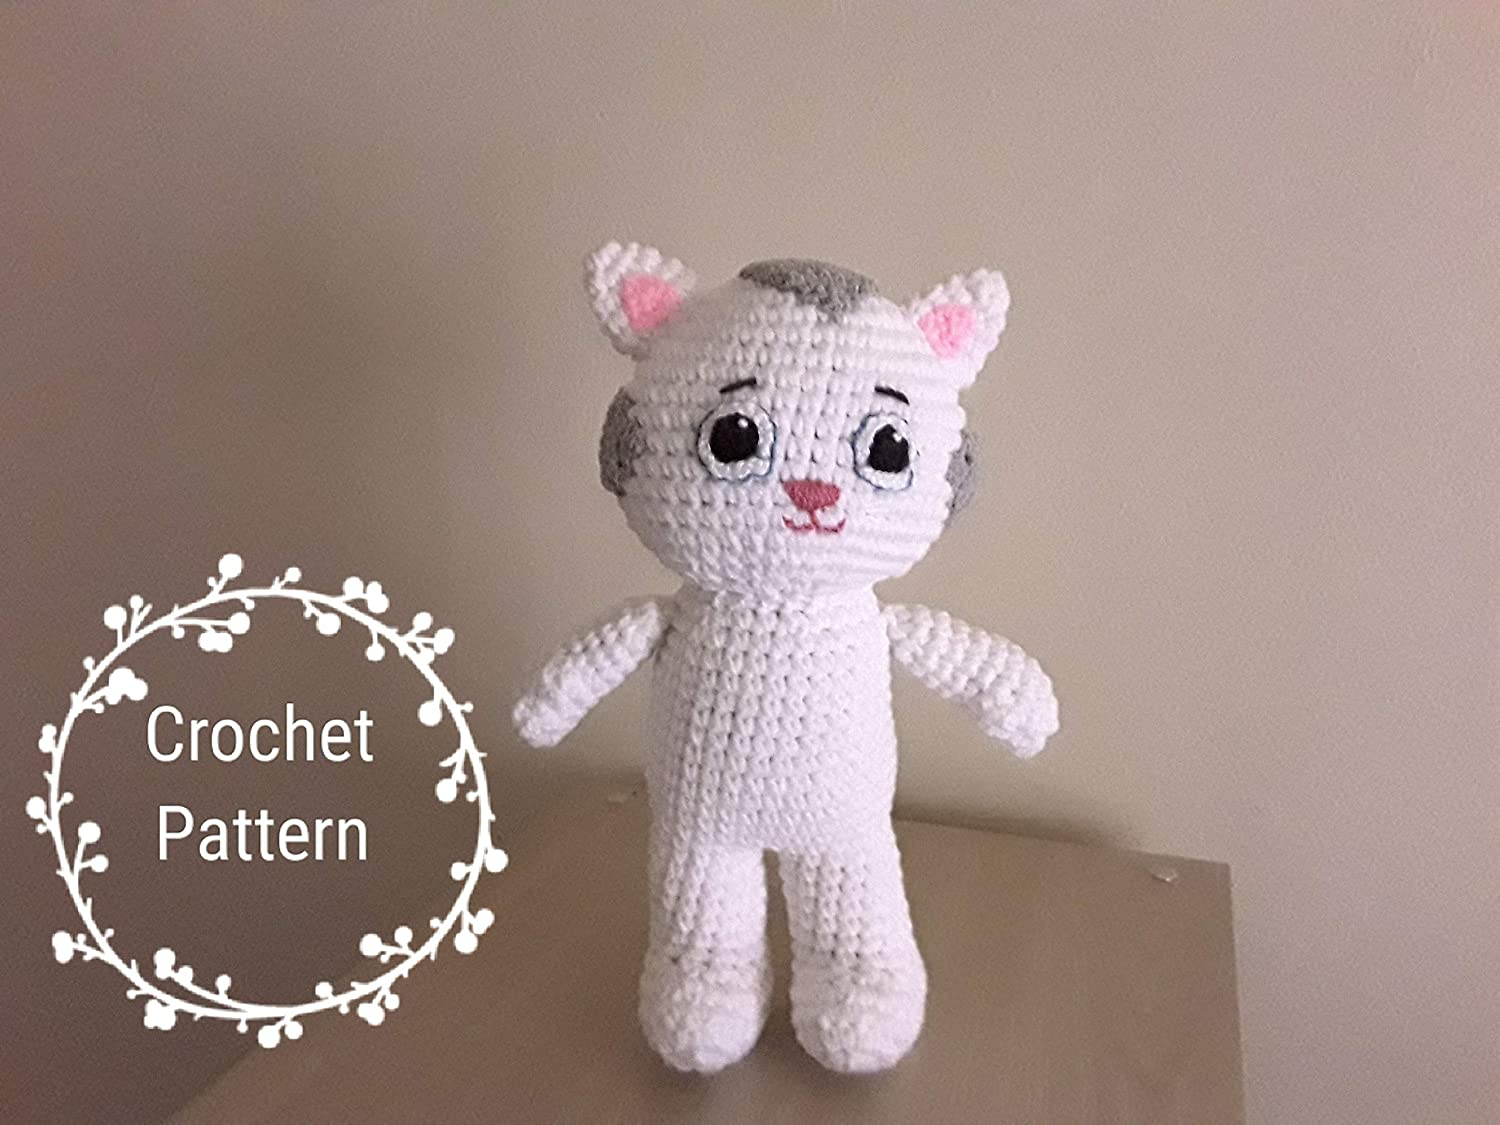 Cat Crochet Patterns You'll Love To Try | The WHOot | 1125x1500